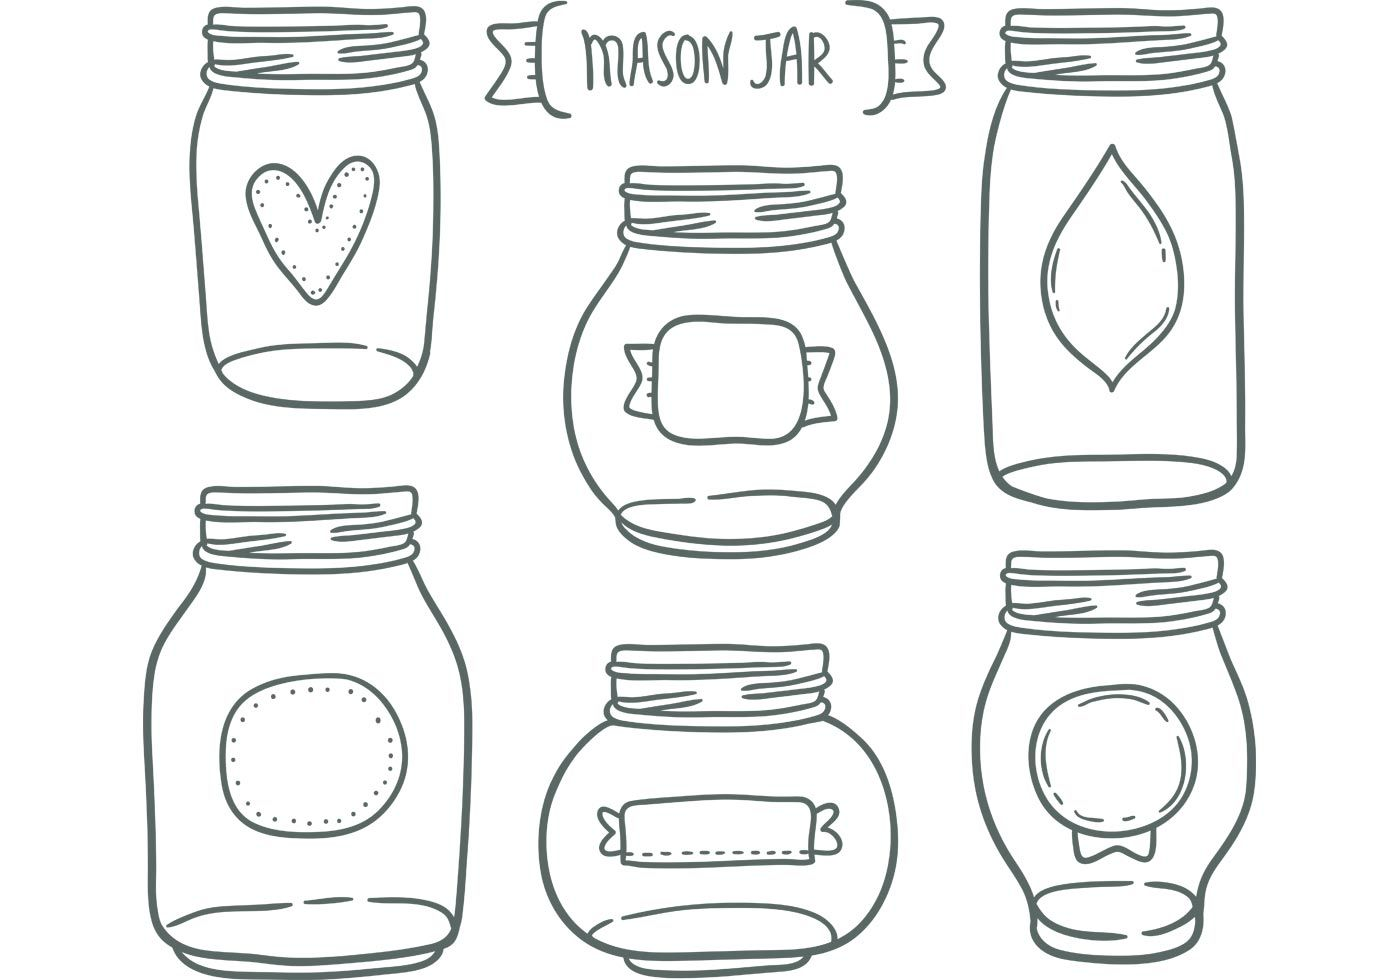 Need A Cute Mason Jar Vectors For Your Next Project This